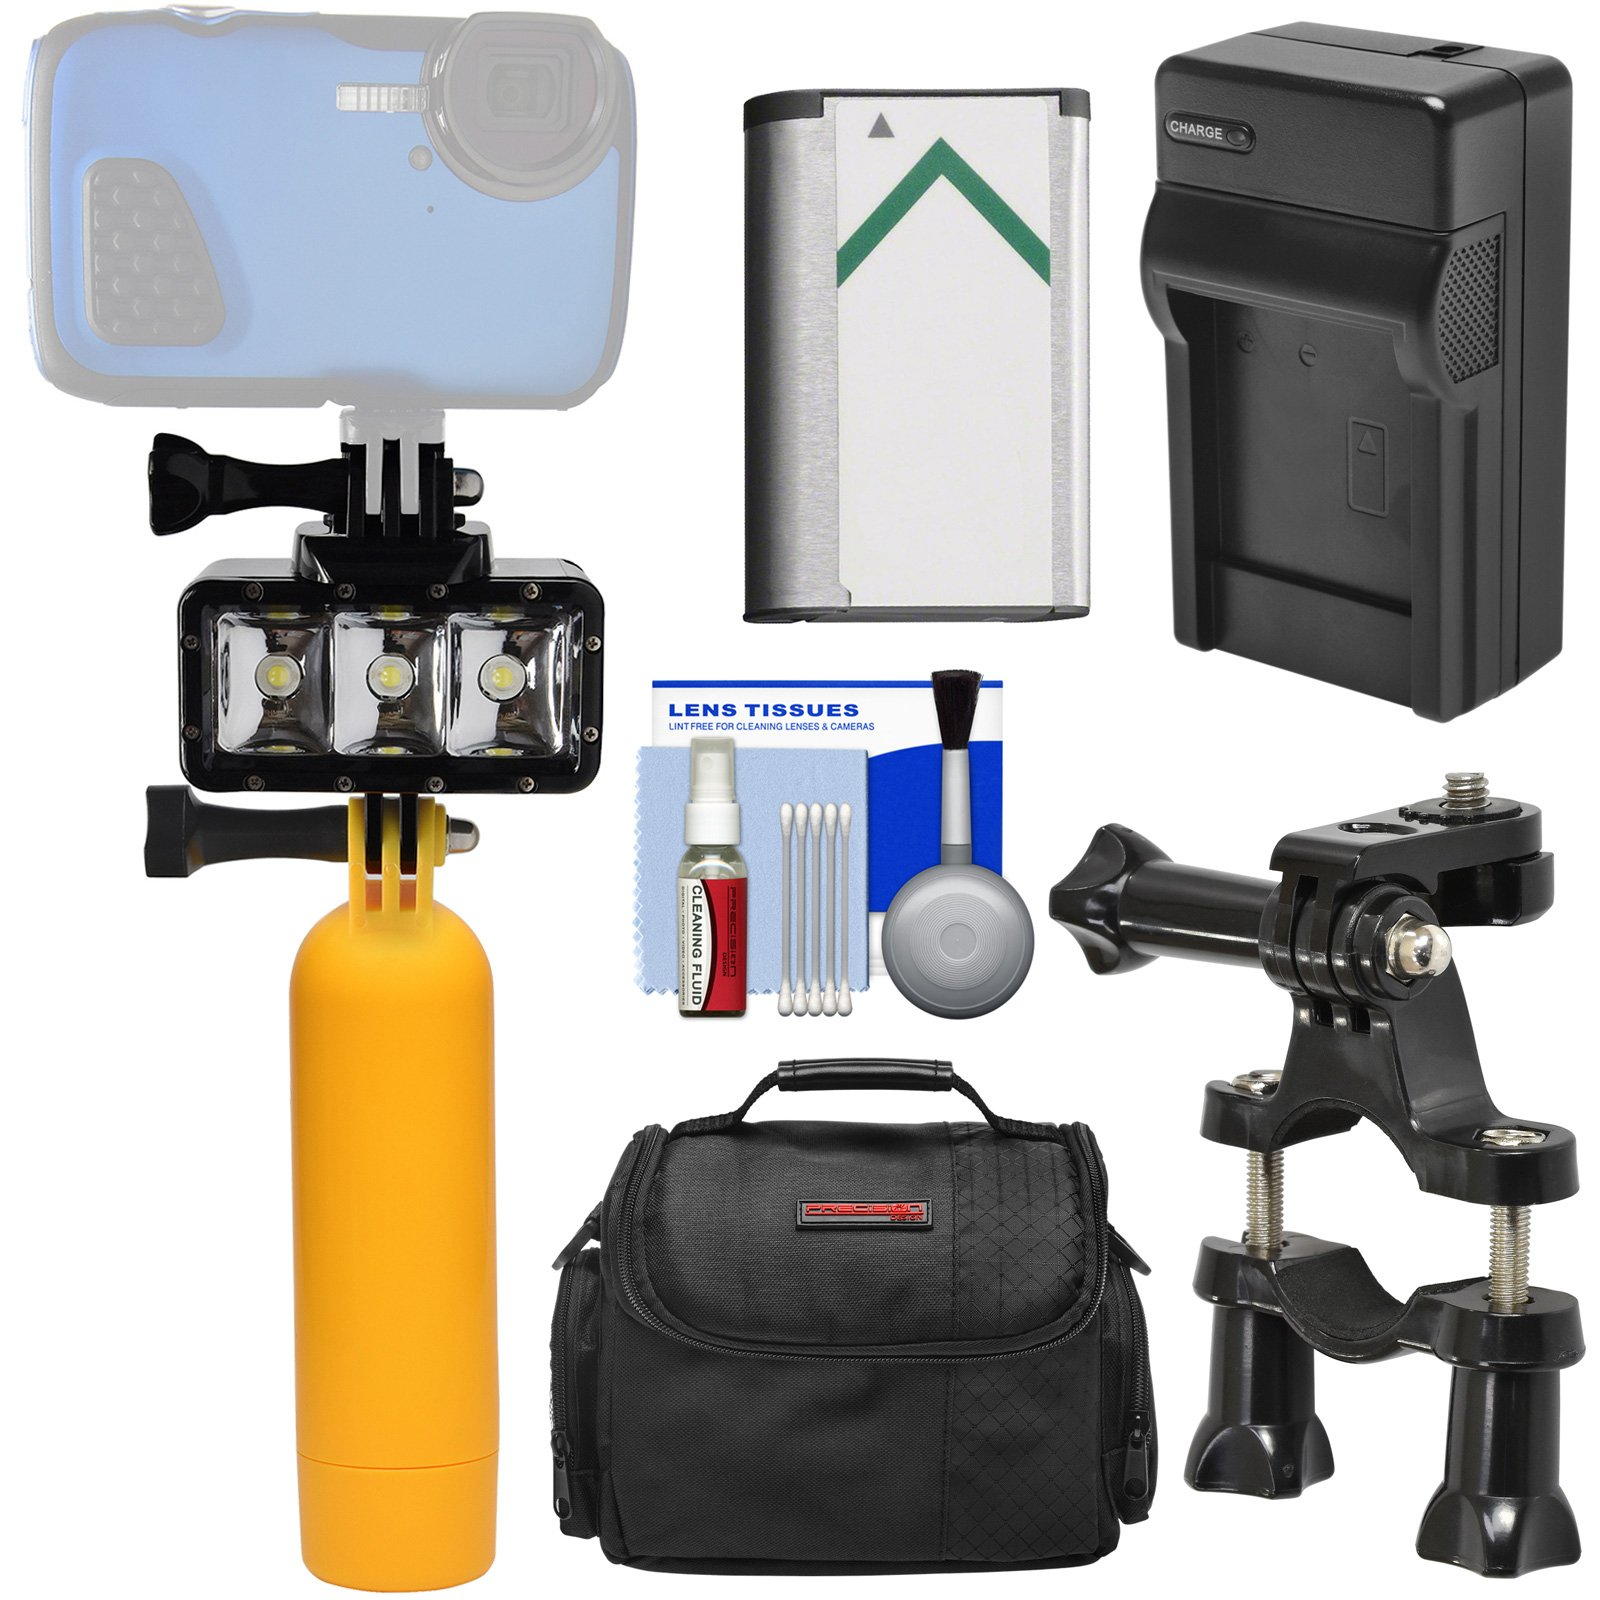 Precision Design WPL40 Waterproof Underwater Diving LED Video Light + Buoy + Bike Mount + Battery & Charger + Case Kit for Sony HDR-AS50, AS300, FDR-X1000V & X3000 Action Cameras by Precision Design